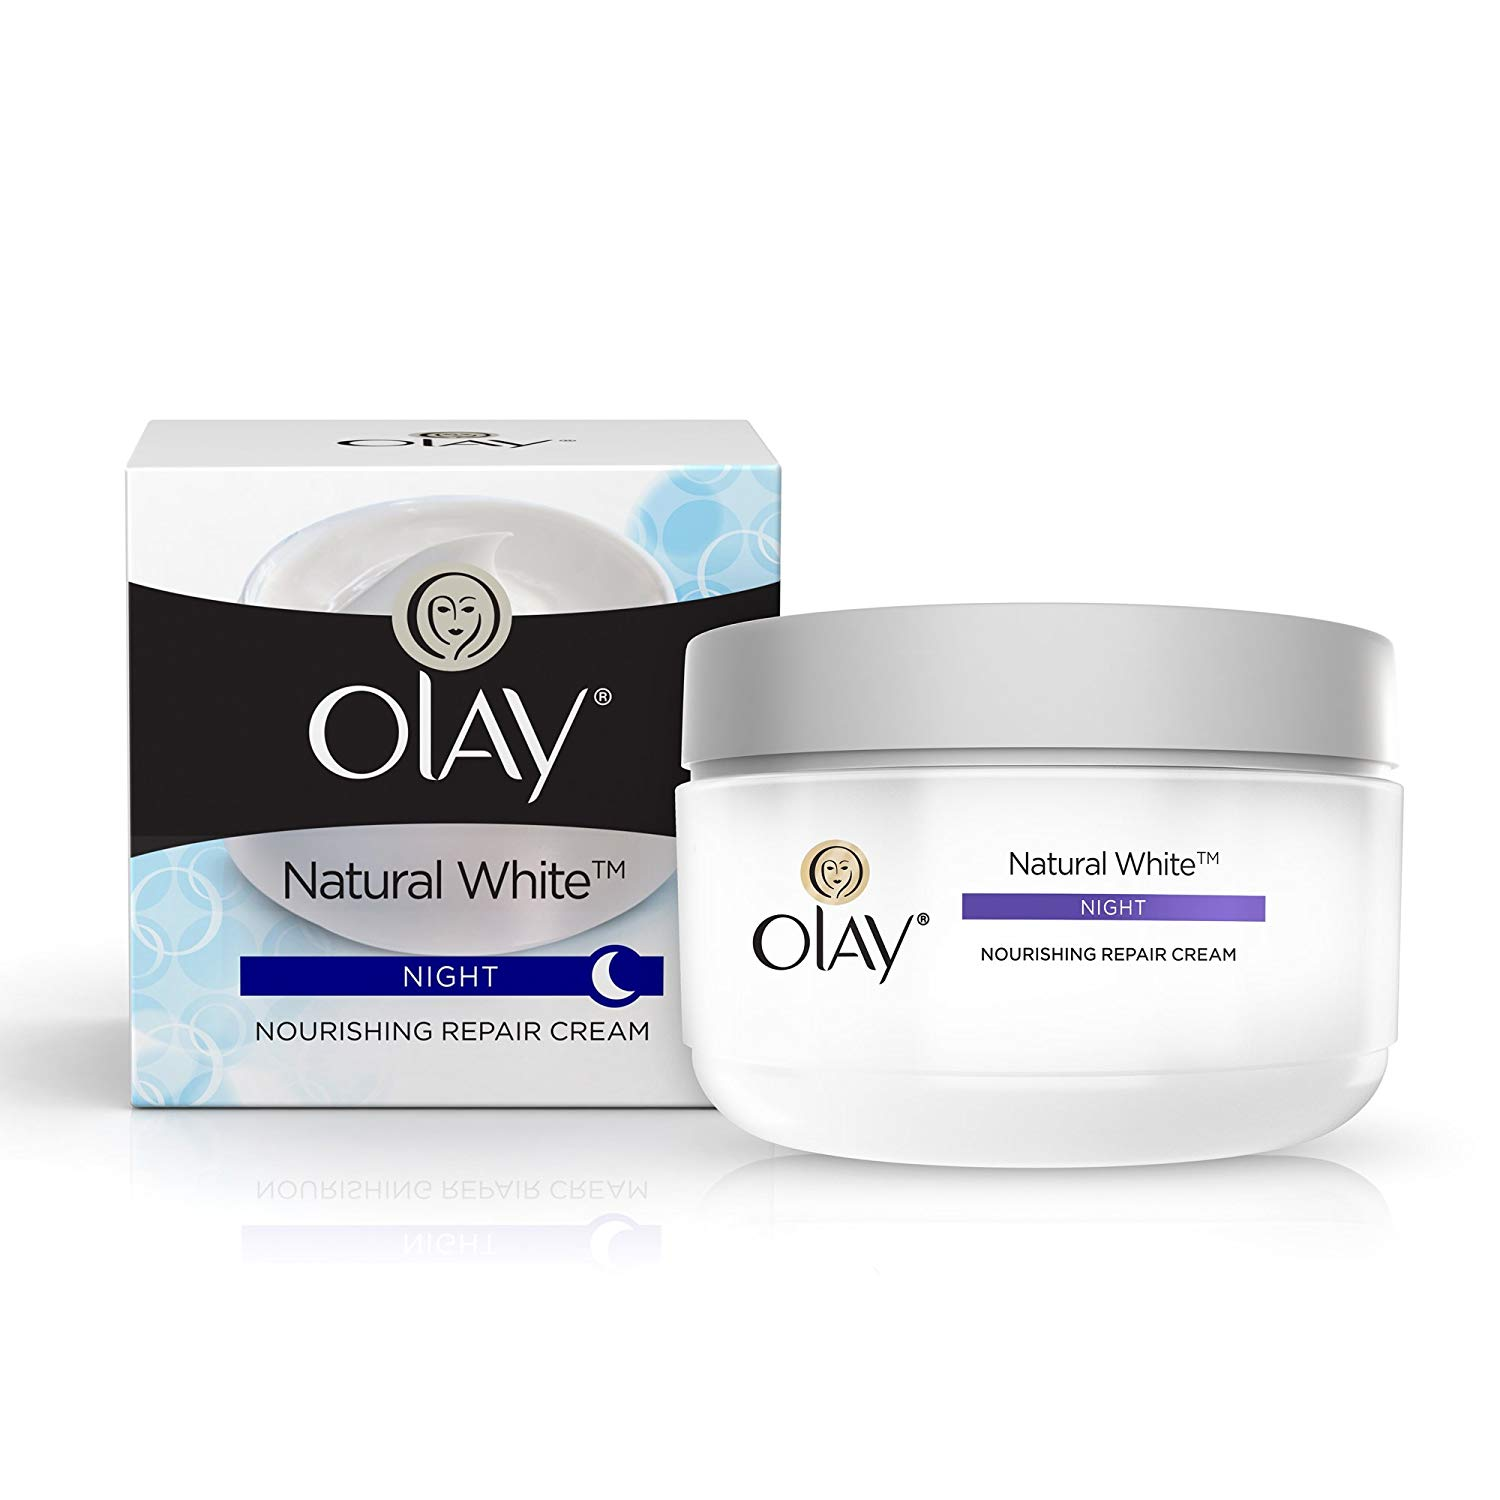 Olay Natural White All in One Fairness Night Skin Cream, 50g